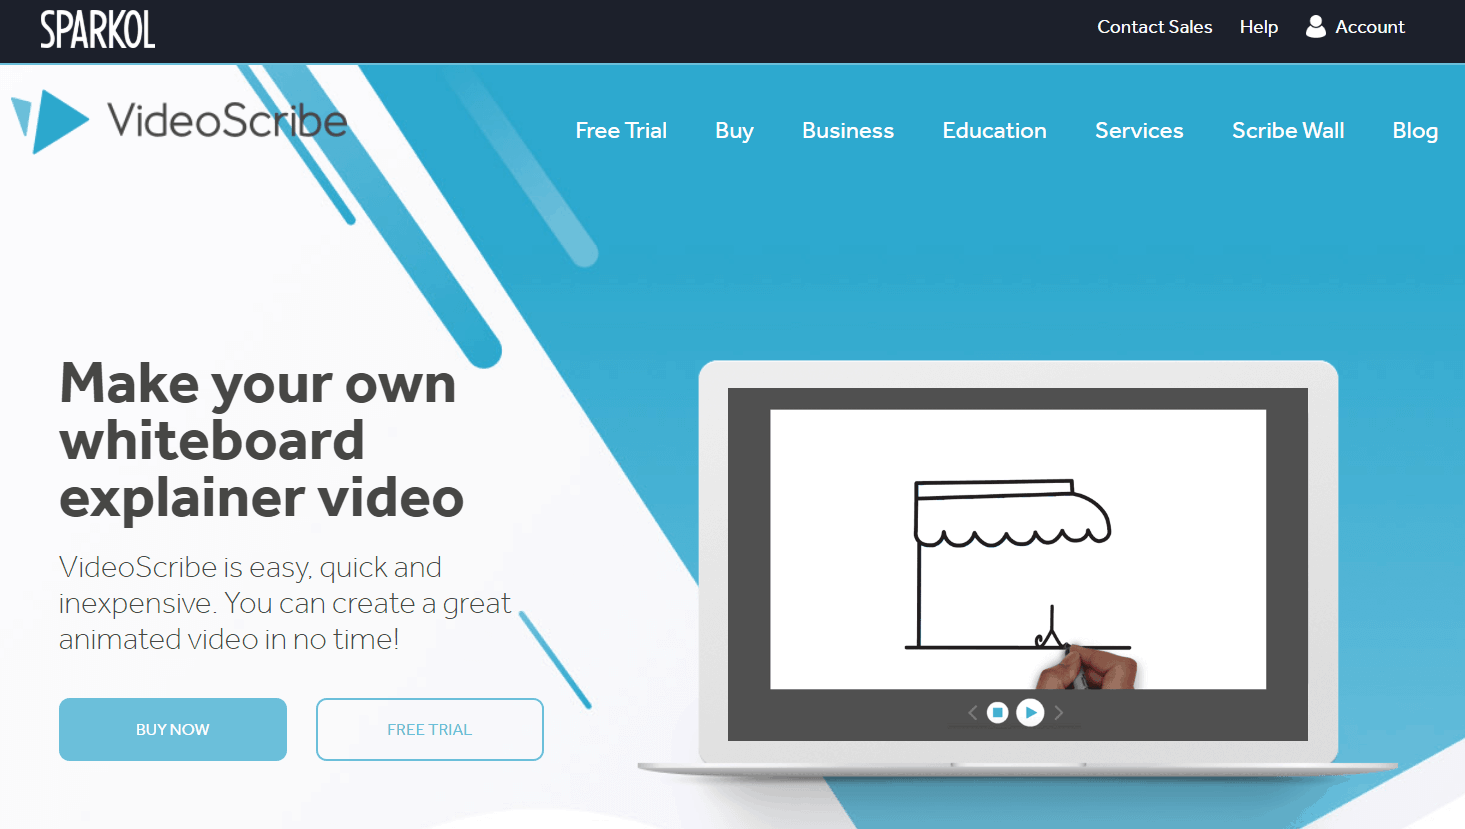 VideoScribe Video Marketing Tool